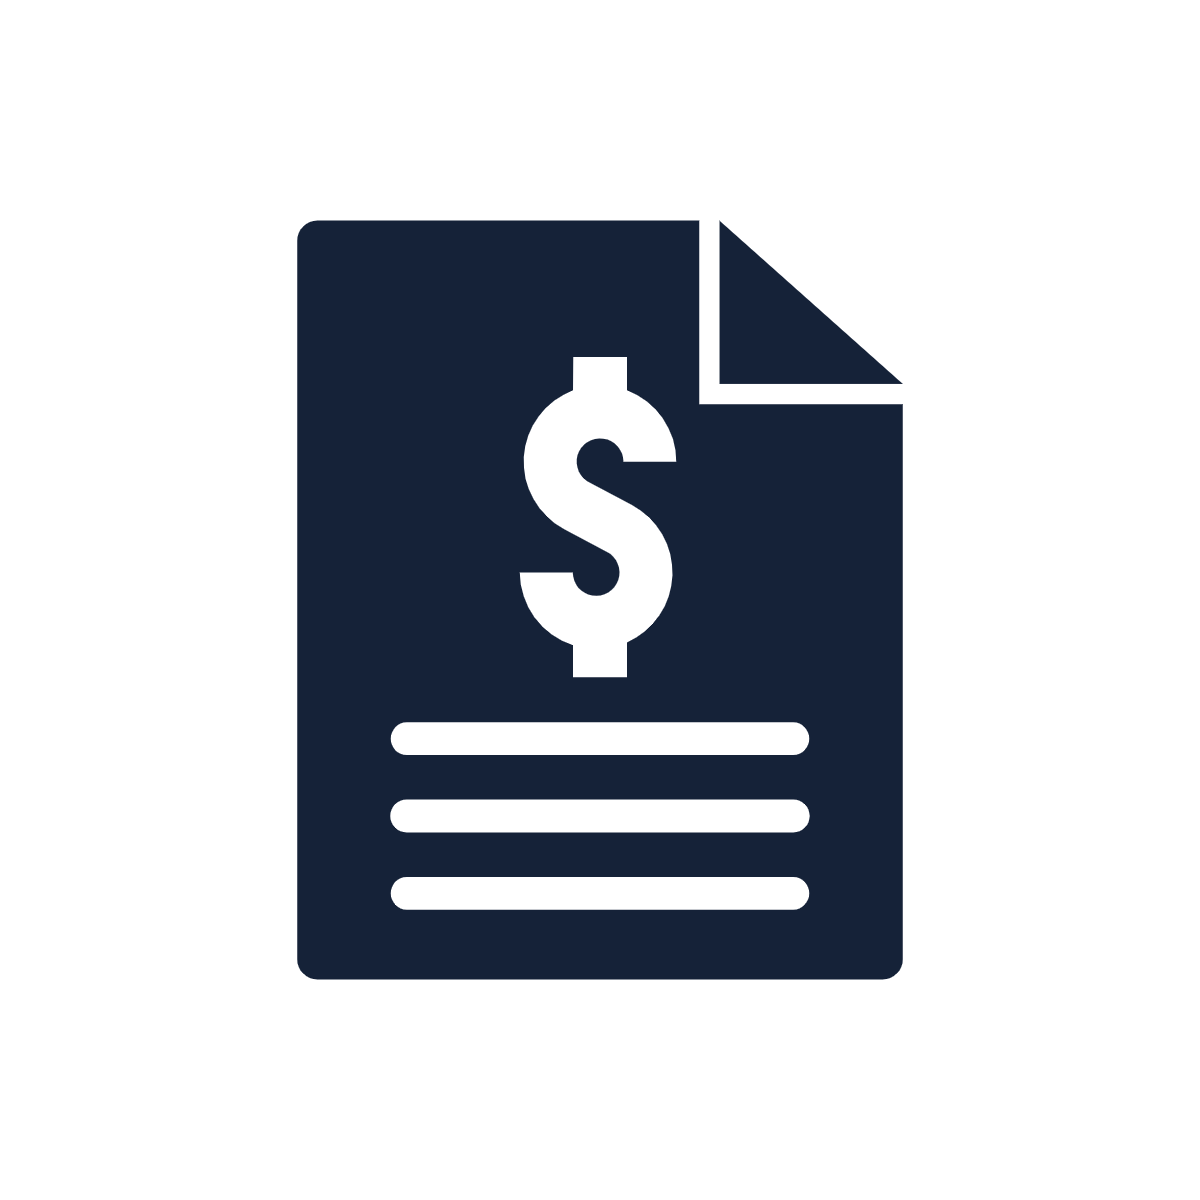 Billing Policy Icon